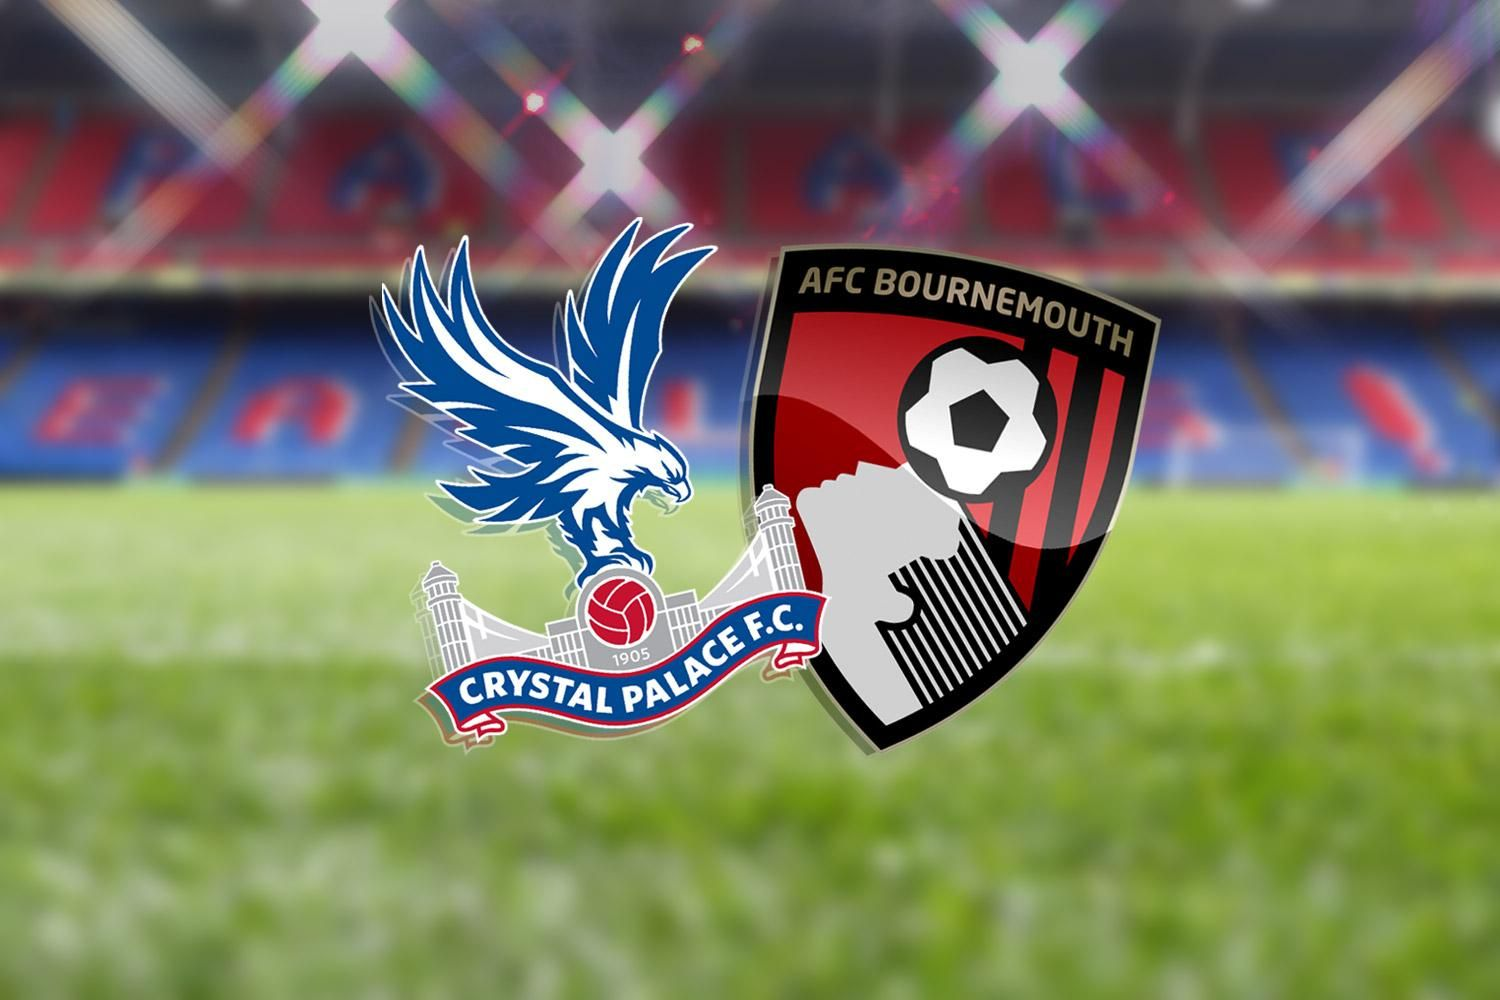 [BBC Sport] Crystal Palace vs Bournemouth Live stream